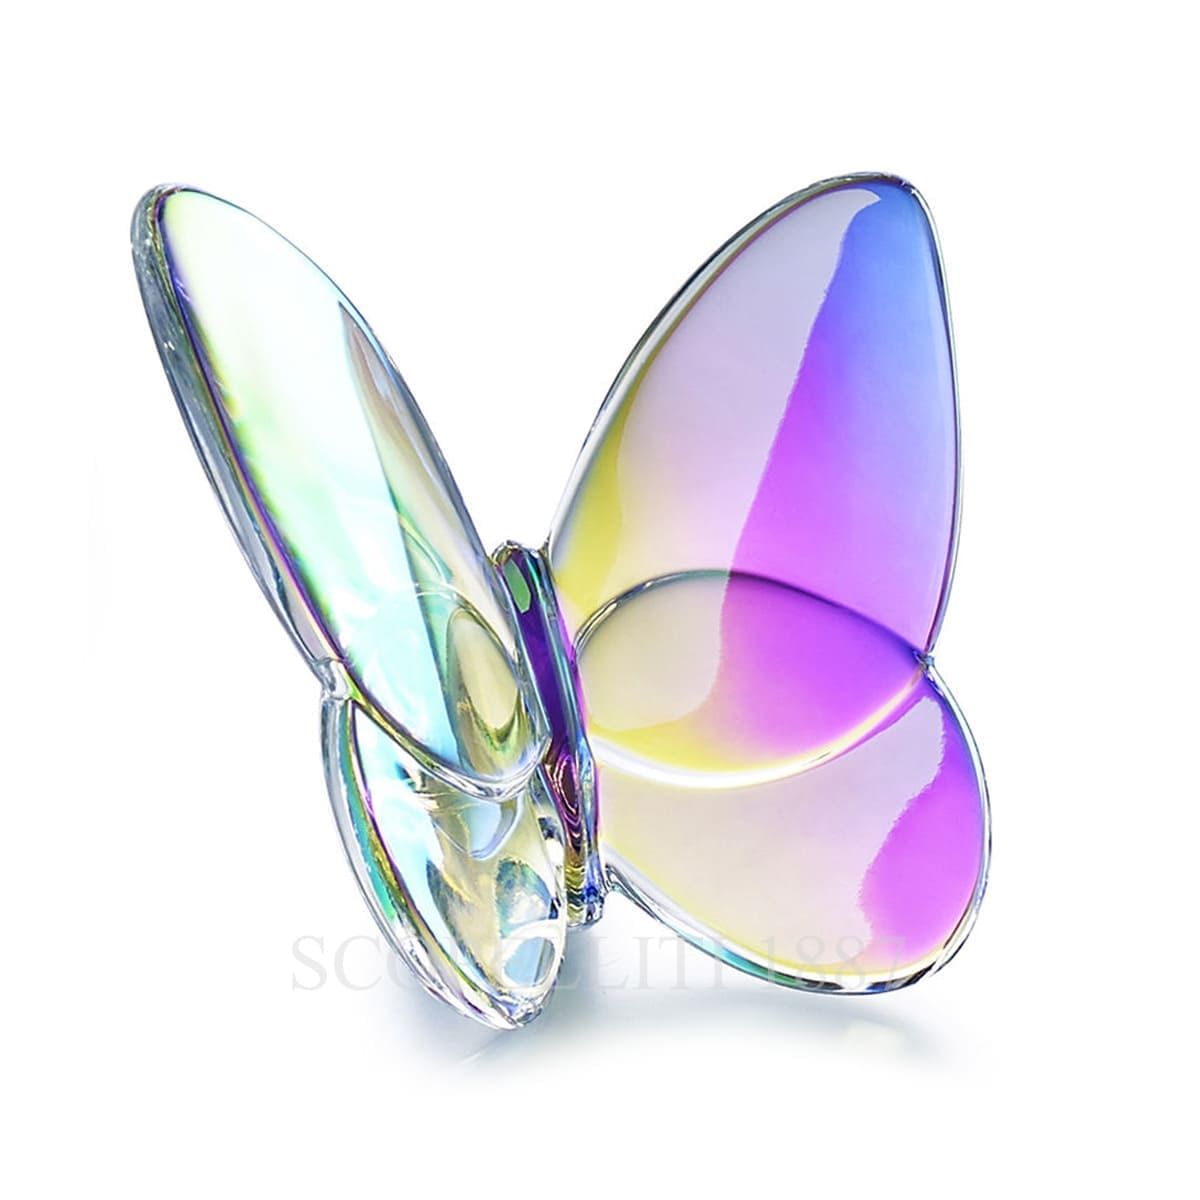 baccarat french design iridescent porte bonheur butterfly